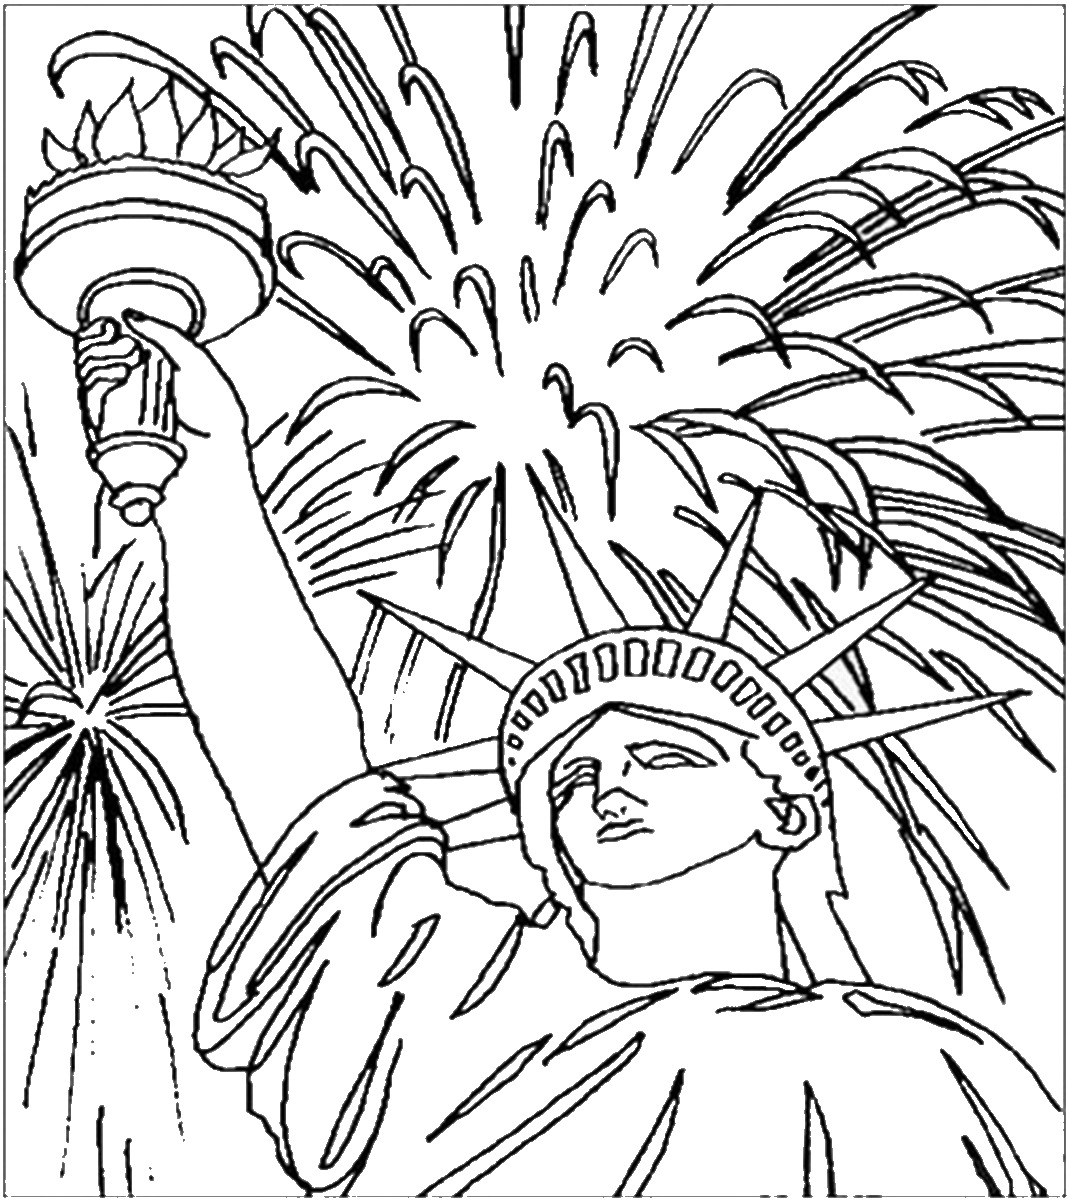 coloring pictures 4th of july 4th of july coloring pages for download 4th of july july of 4th pictures coloring